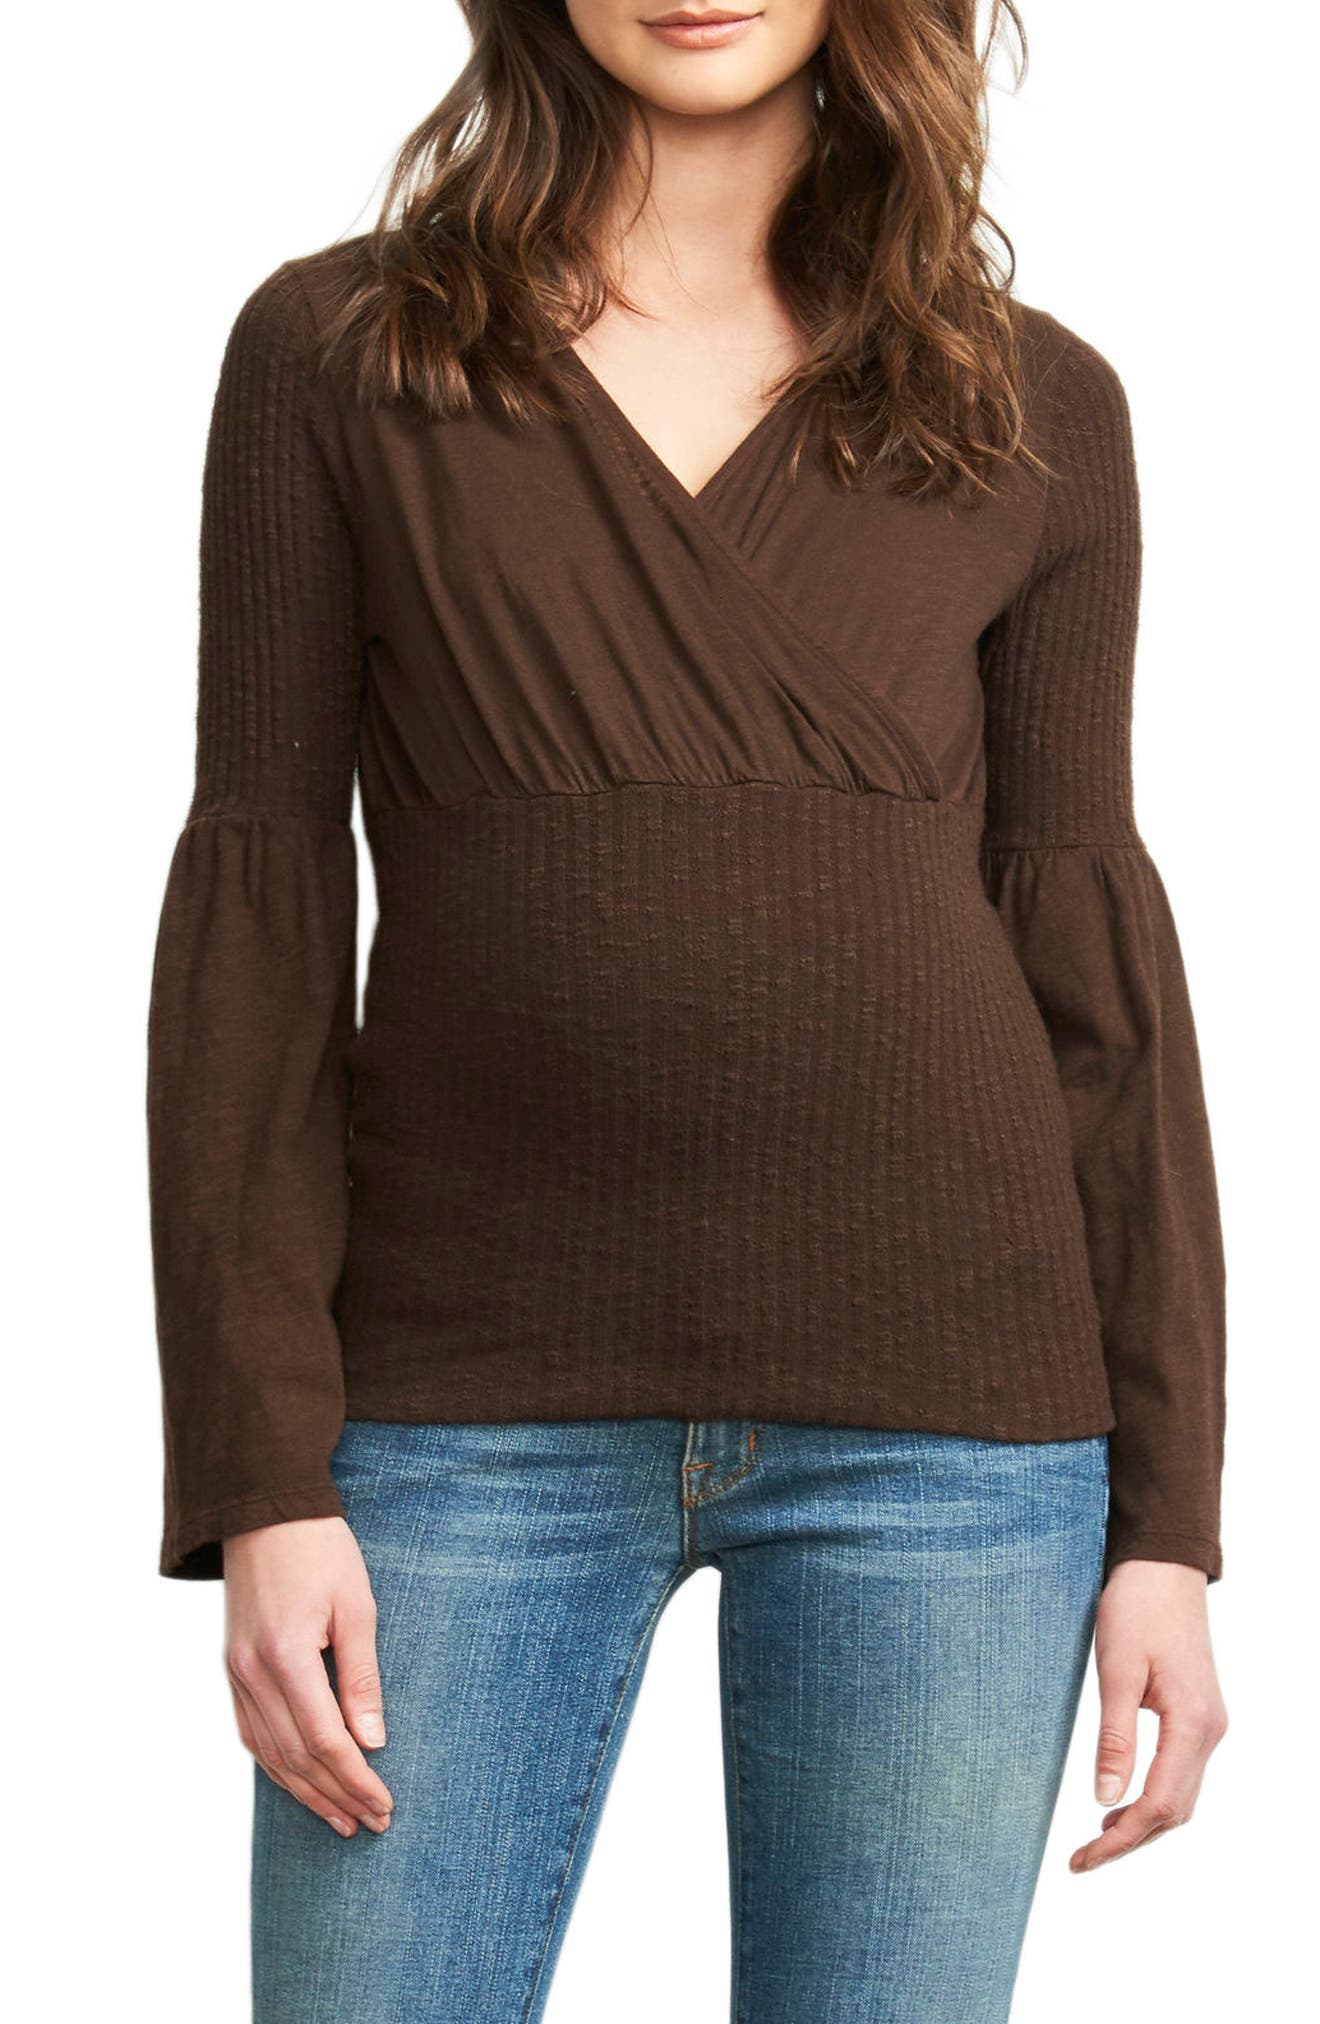 Alternate Image 1 Selected - Maternal American Belly Hug Knit Maternity Top